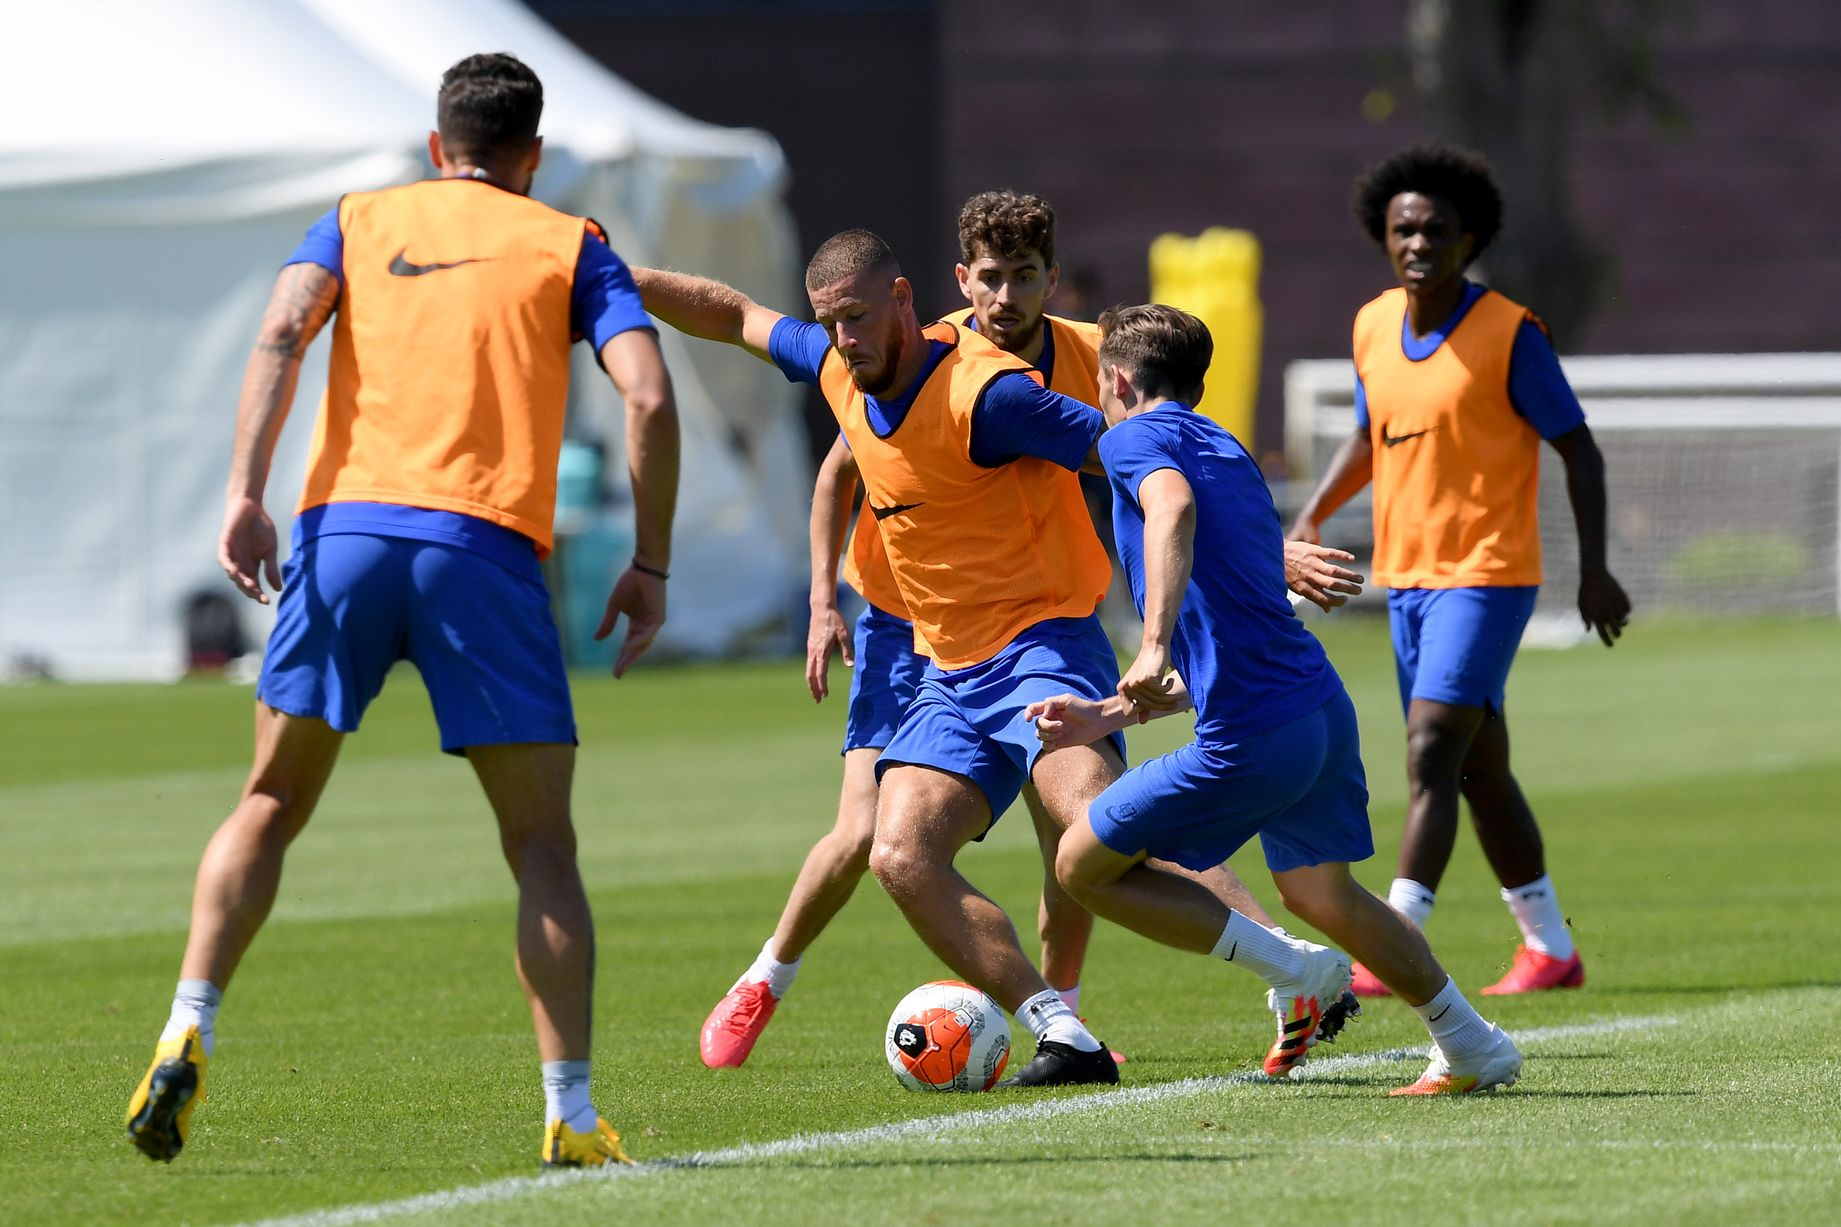 Chelsea picture special: Gilmour, Pulisic and Loftus-Cheek train ahead of Aston Villa trip - Bóng Đá